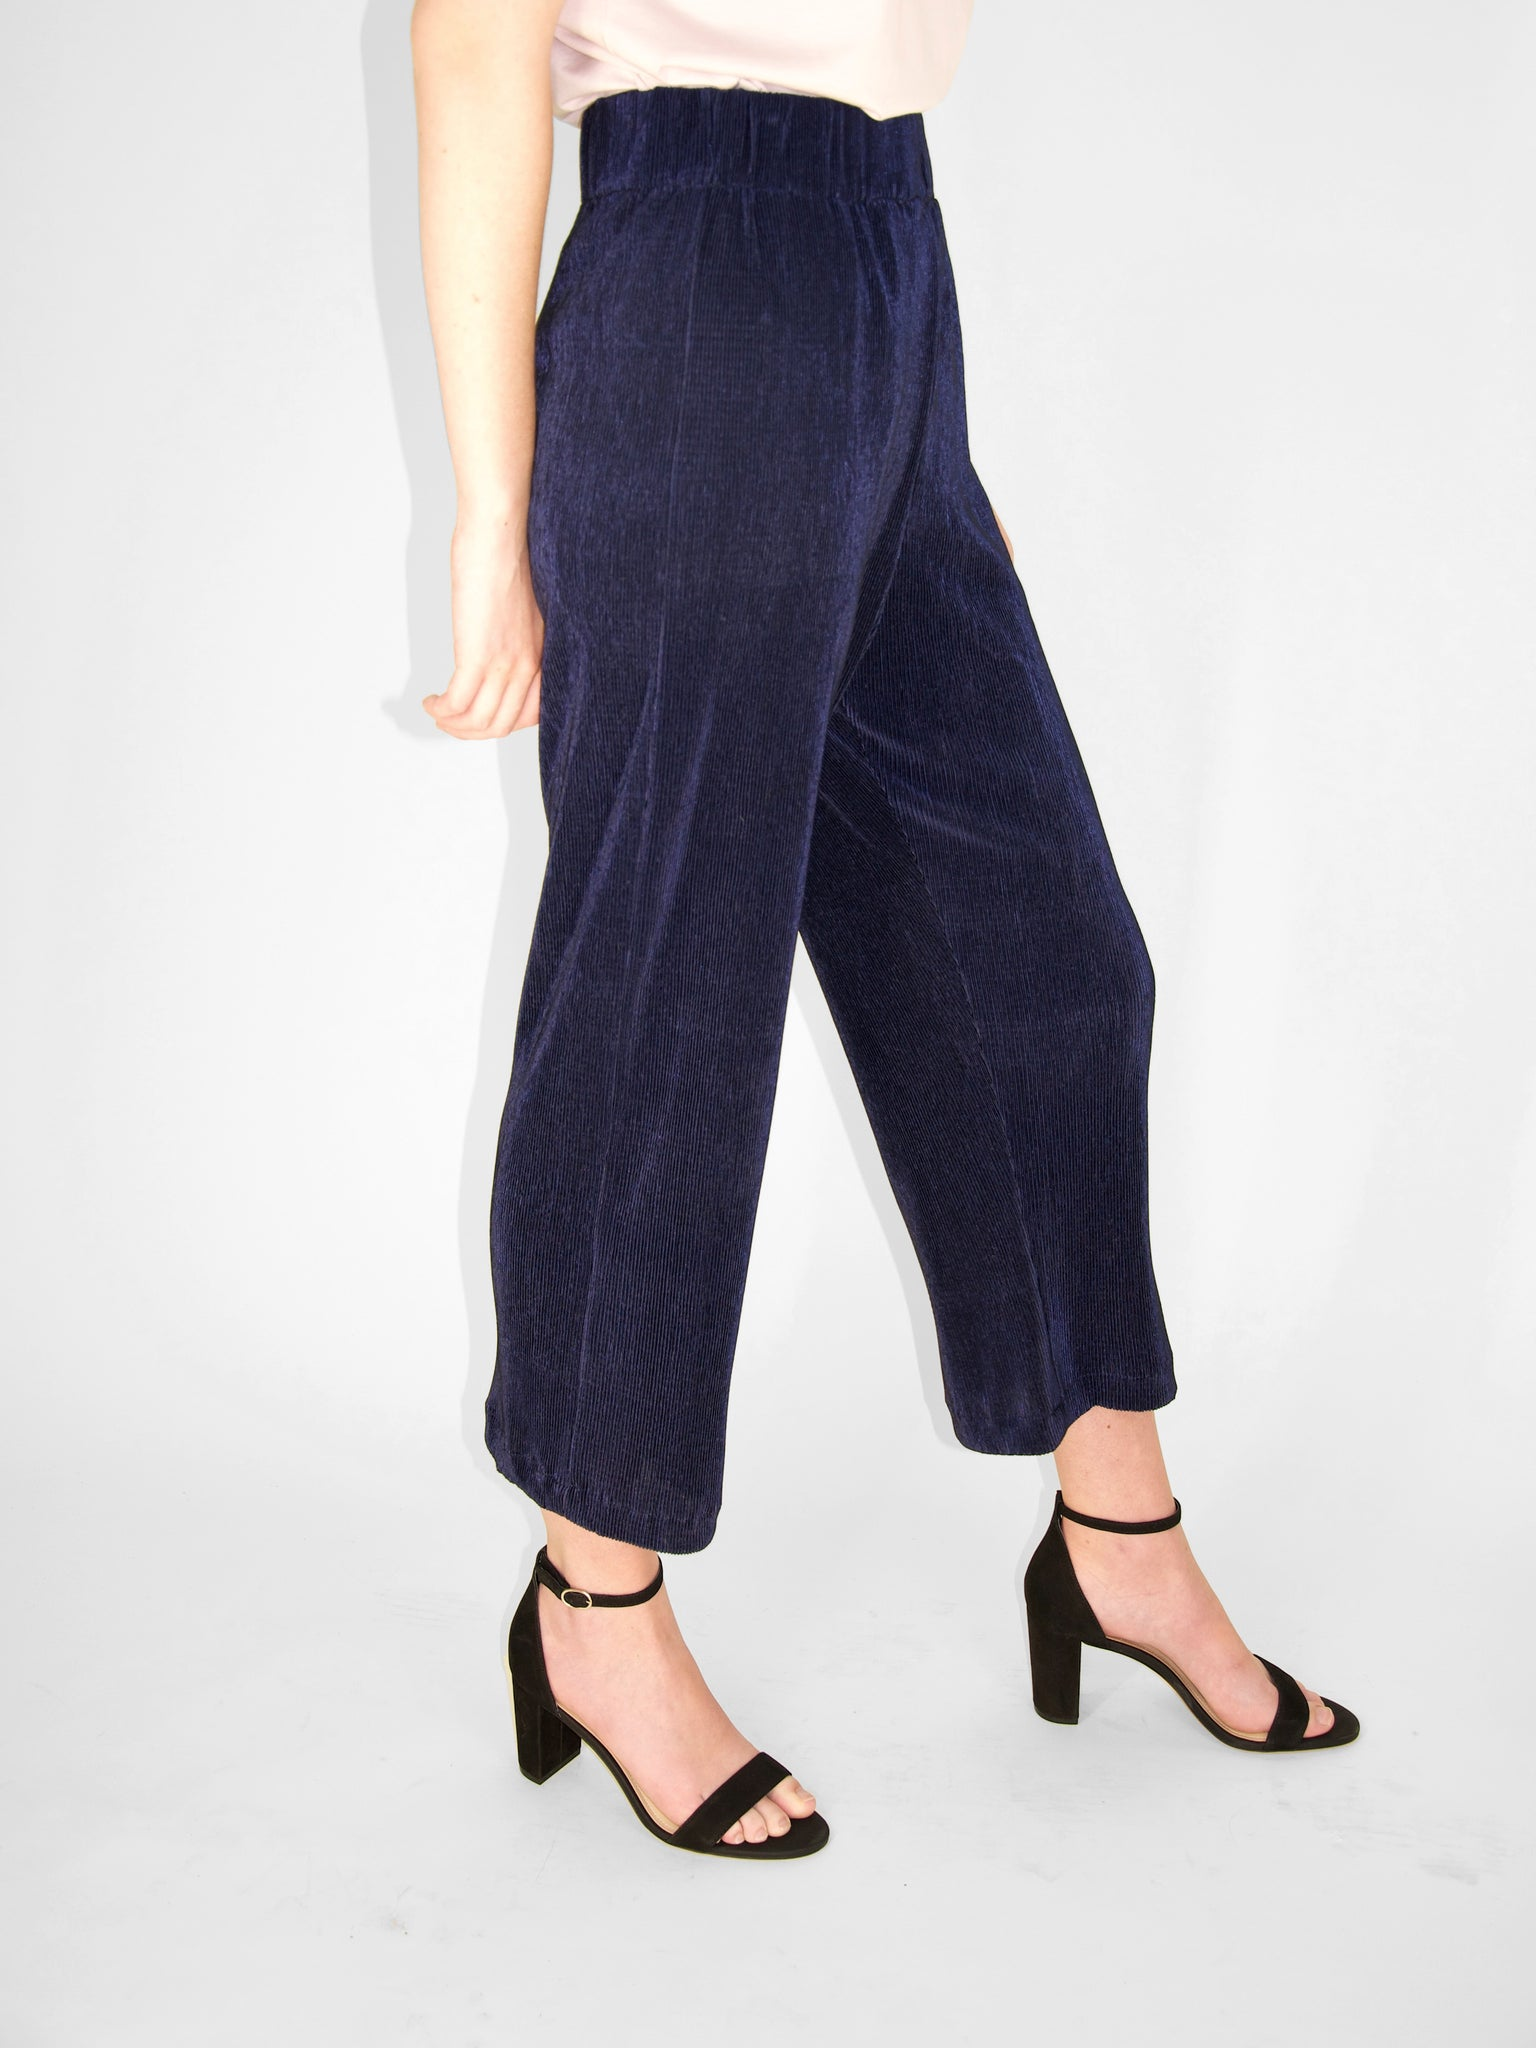 Beth - Deck Pants / Navy Crinkle